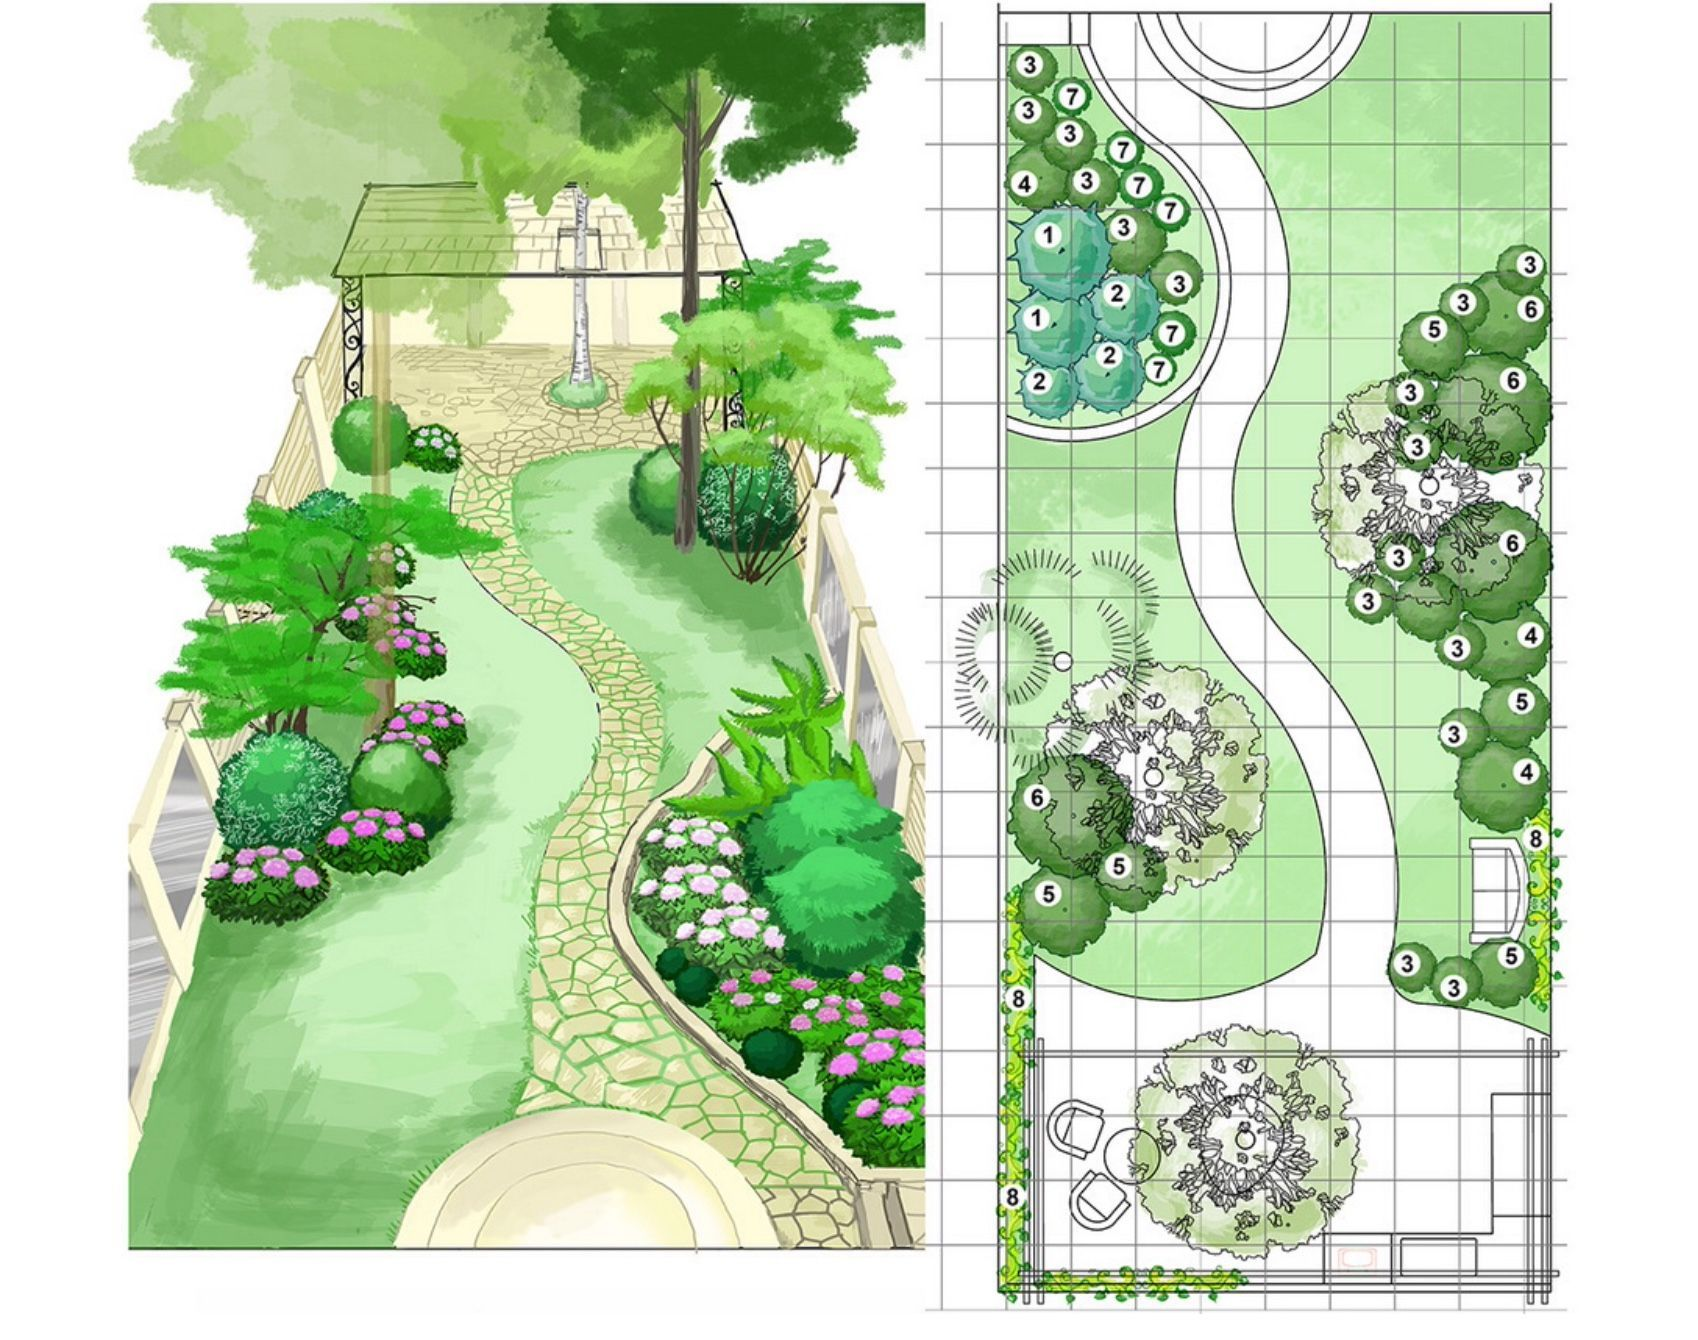 14 Clever Landscape Design Plans And Improvements For A Small Backyard Simphome English Garden Design Back Garden Design Landscape Design Plans Free backyard landscape design plans